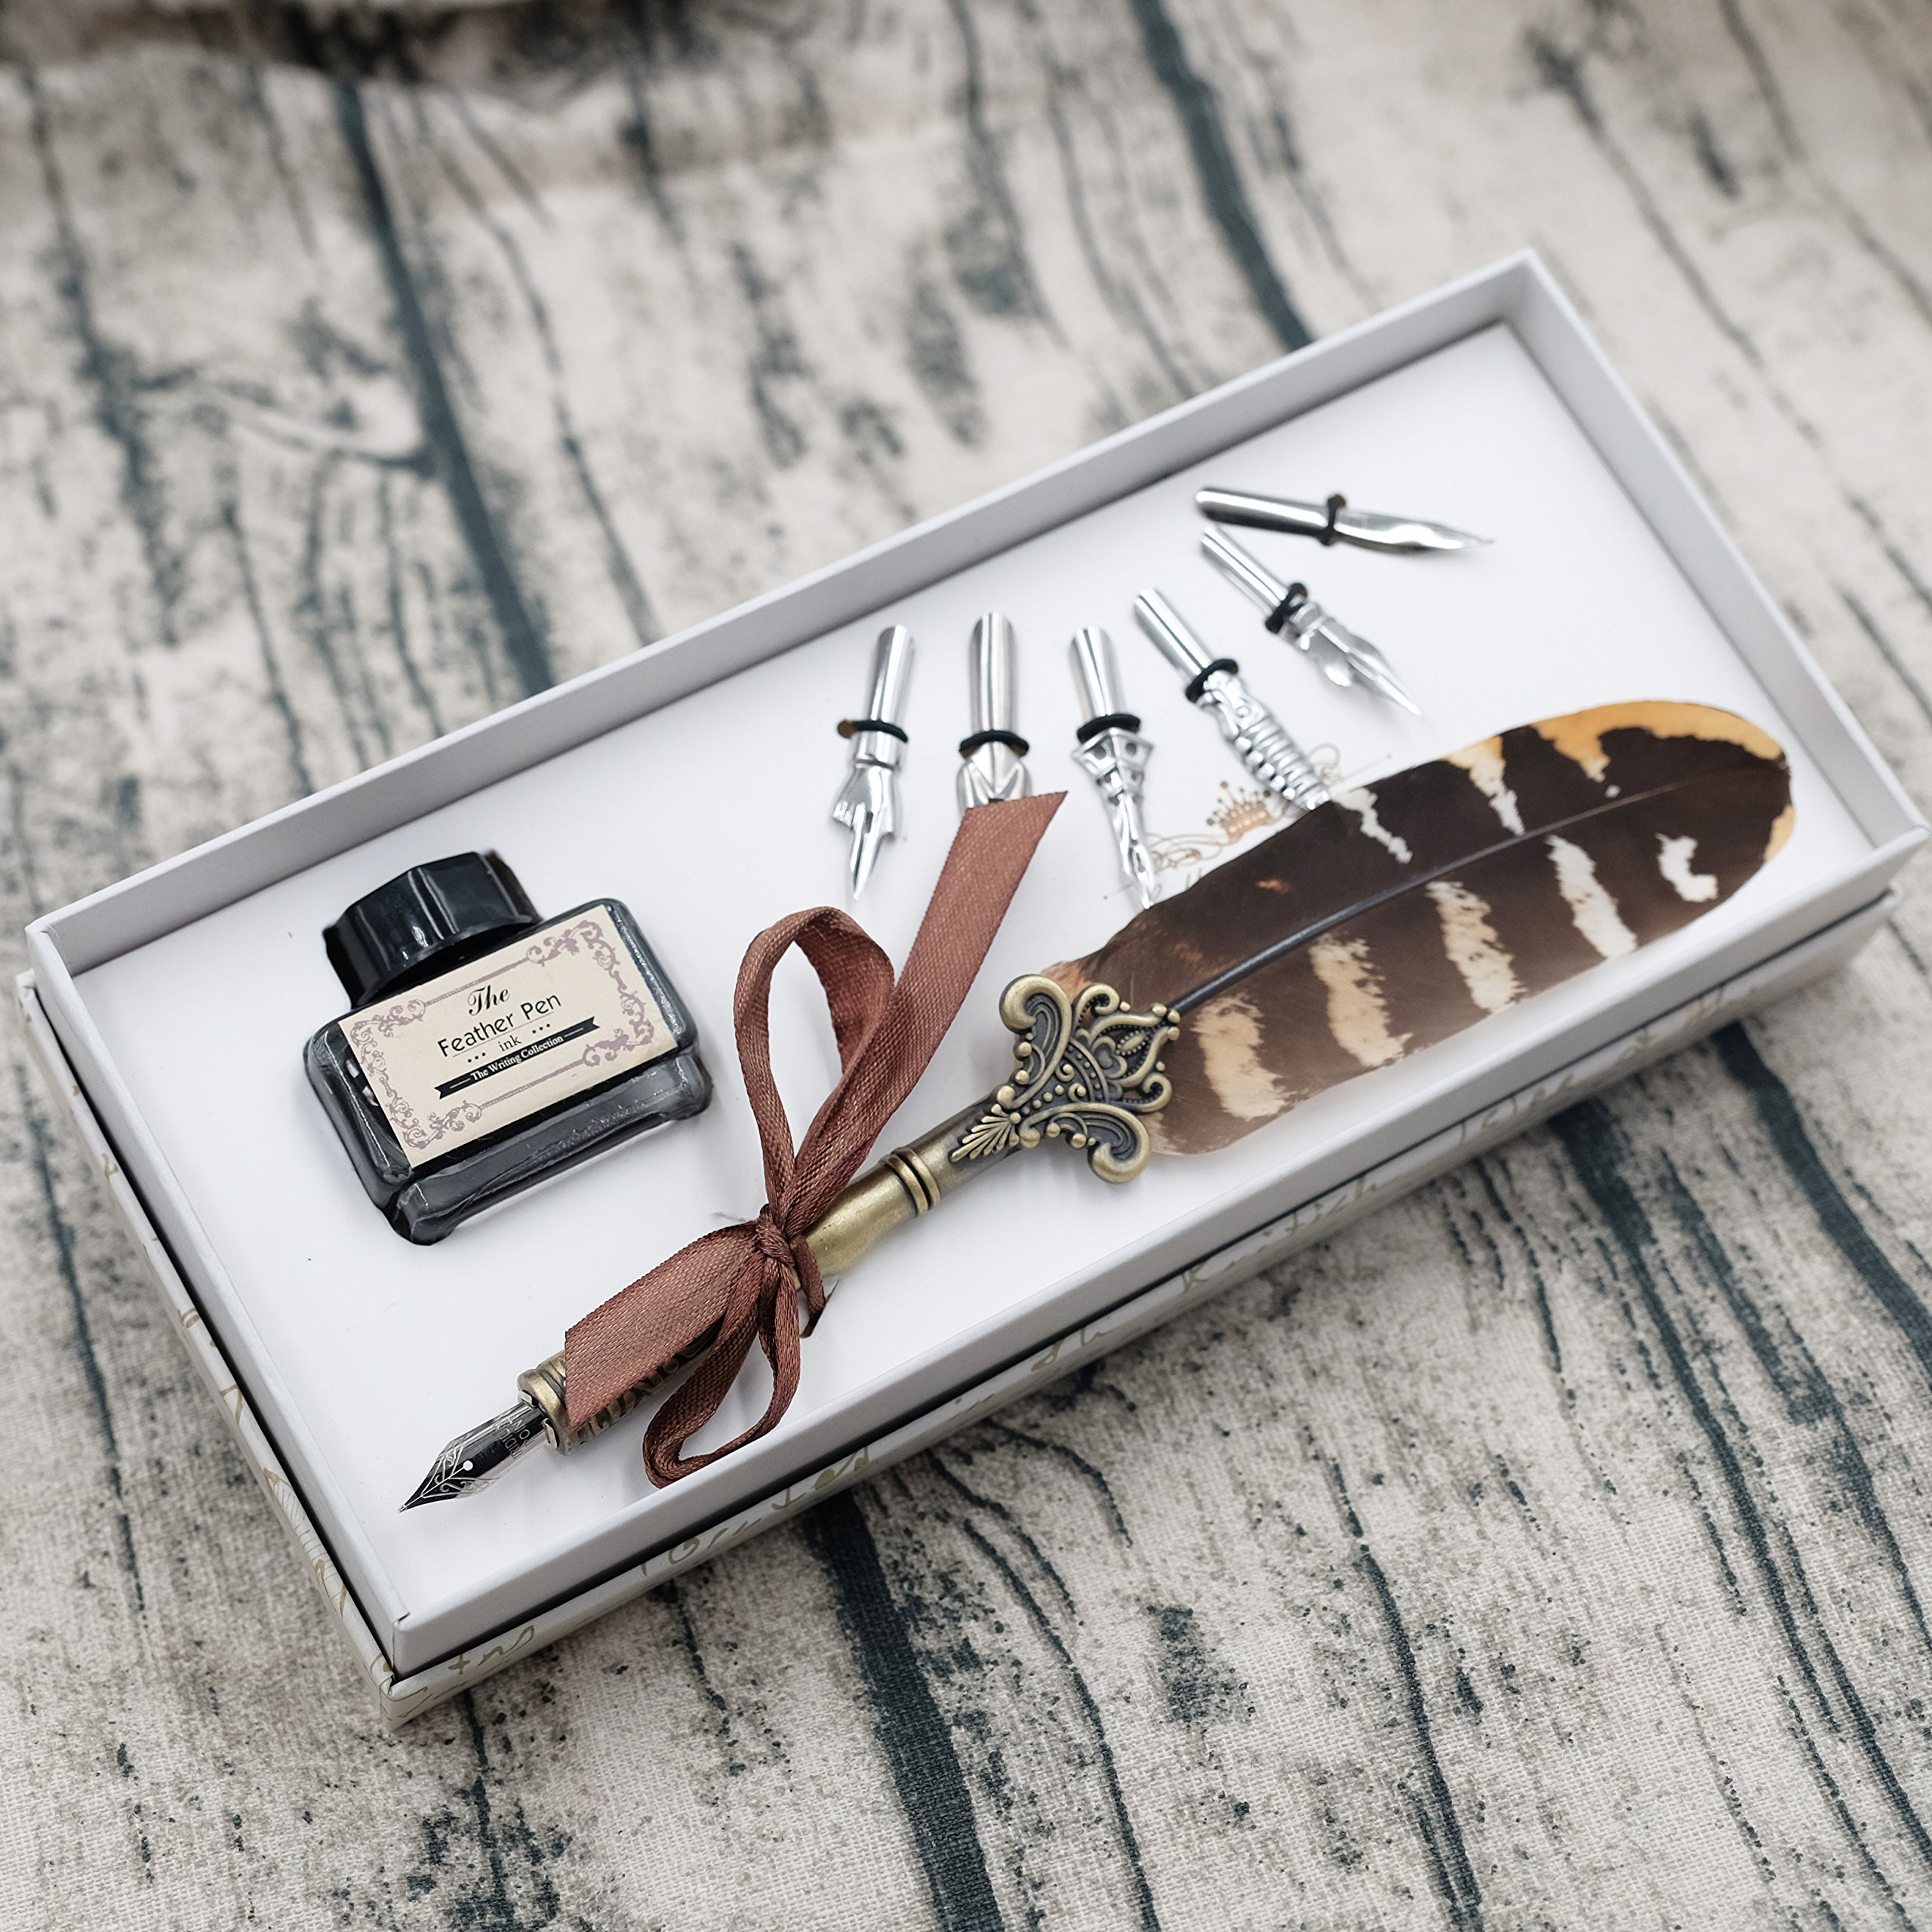 Feather Quill Pen Set Dip Pen with Ink and 6pcs Stainless Steel Nibs Calligraphy Pen in Gift Box HO-Q-300 by HOHUHU (Image #2)